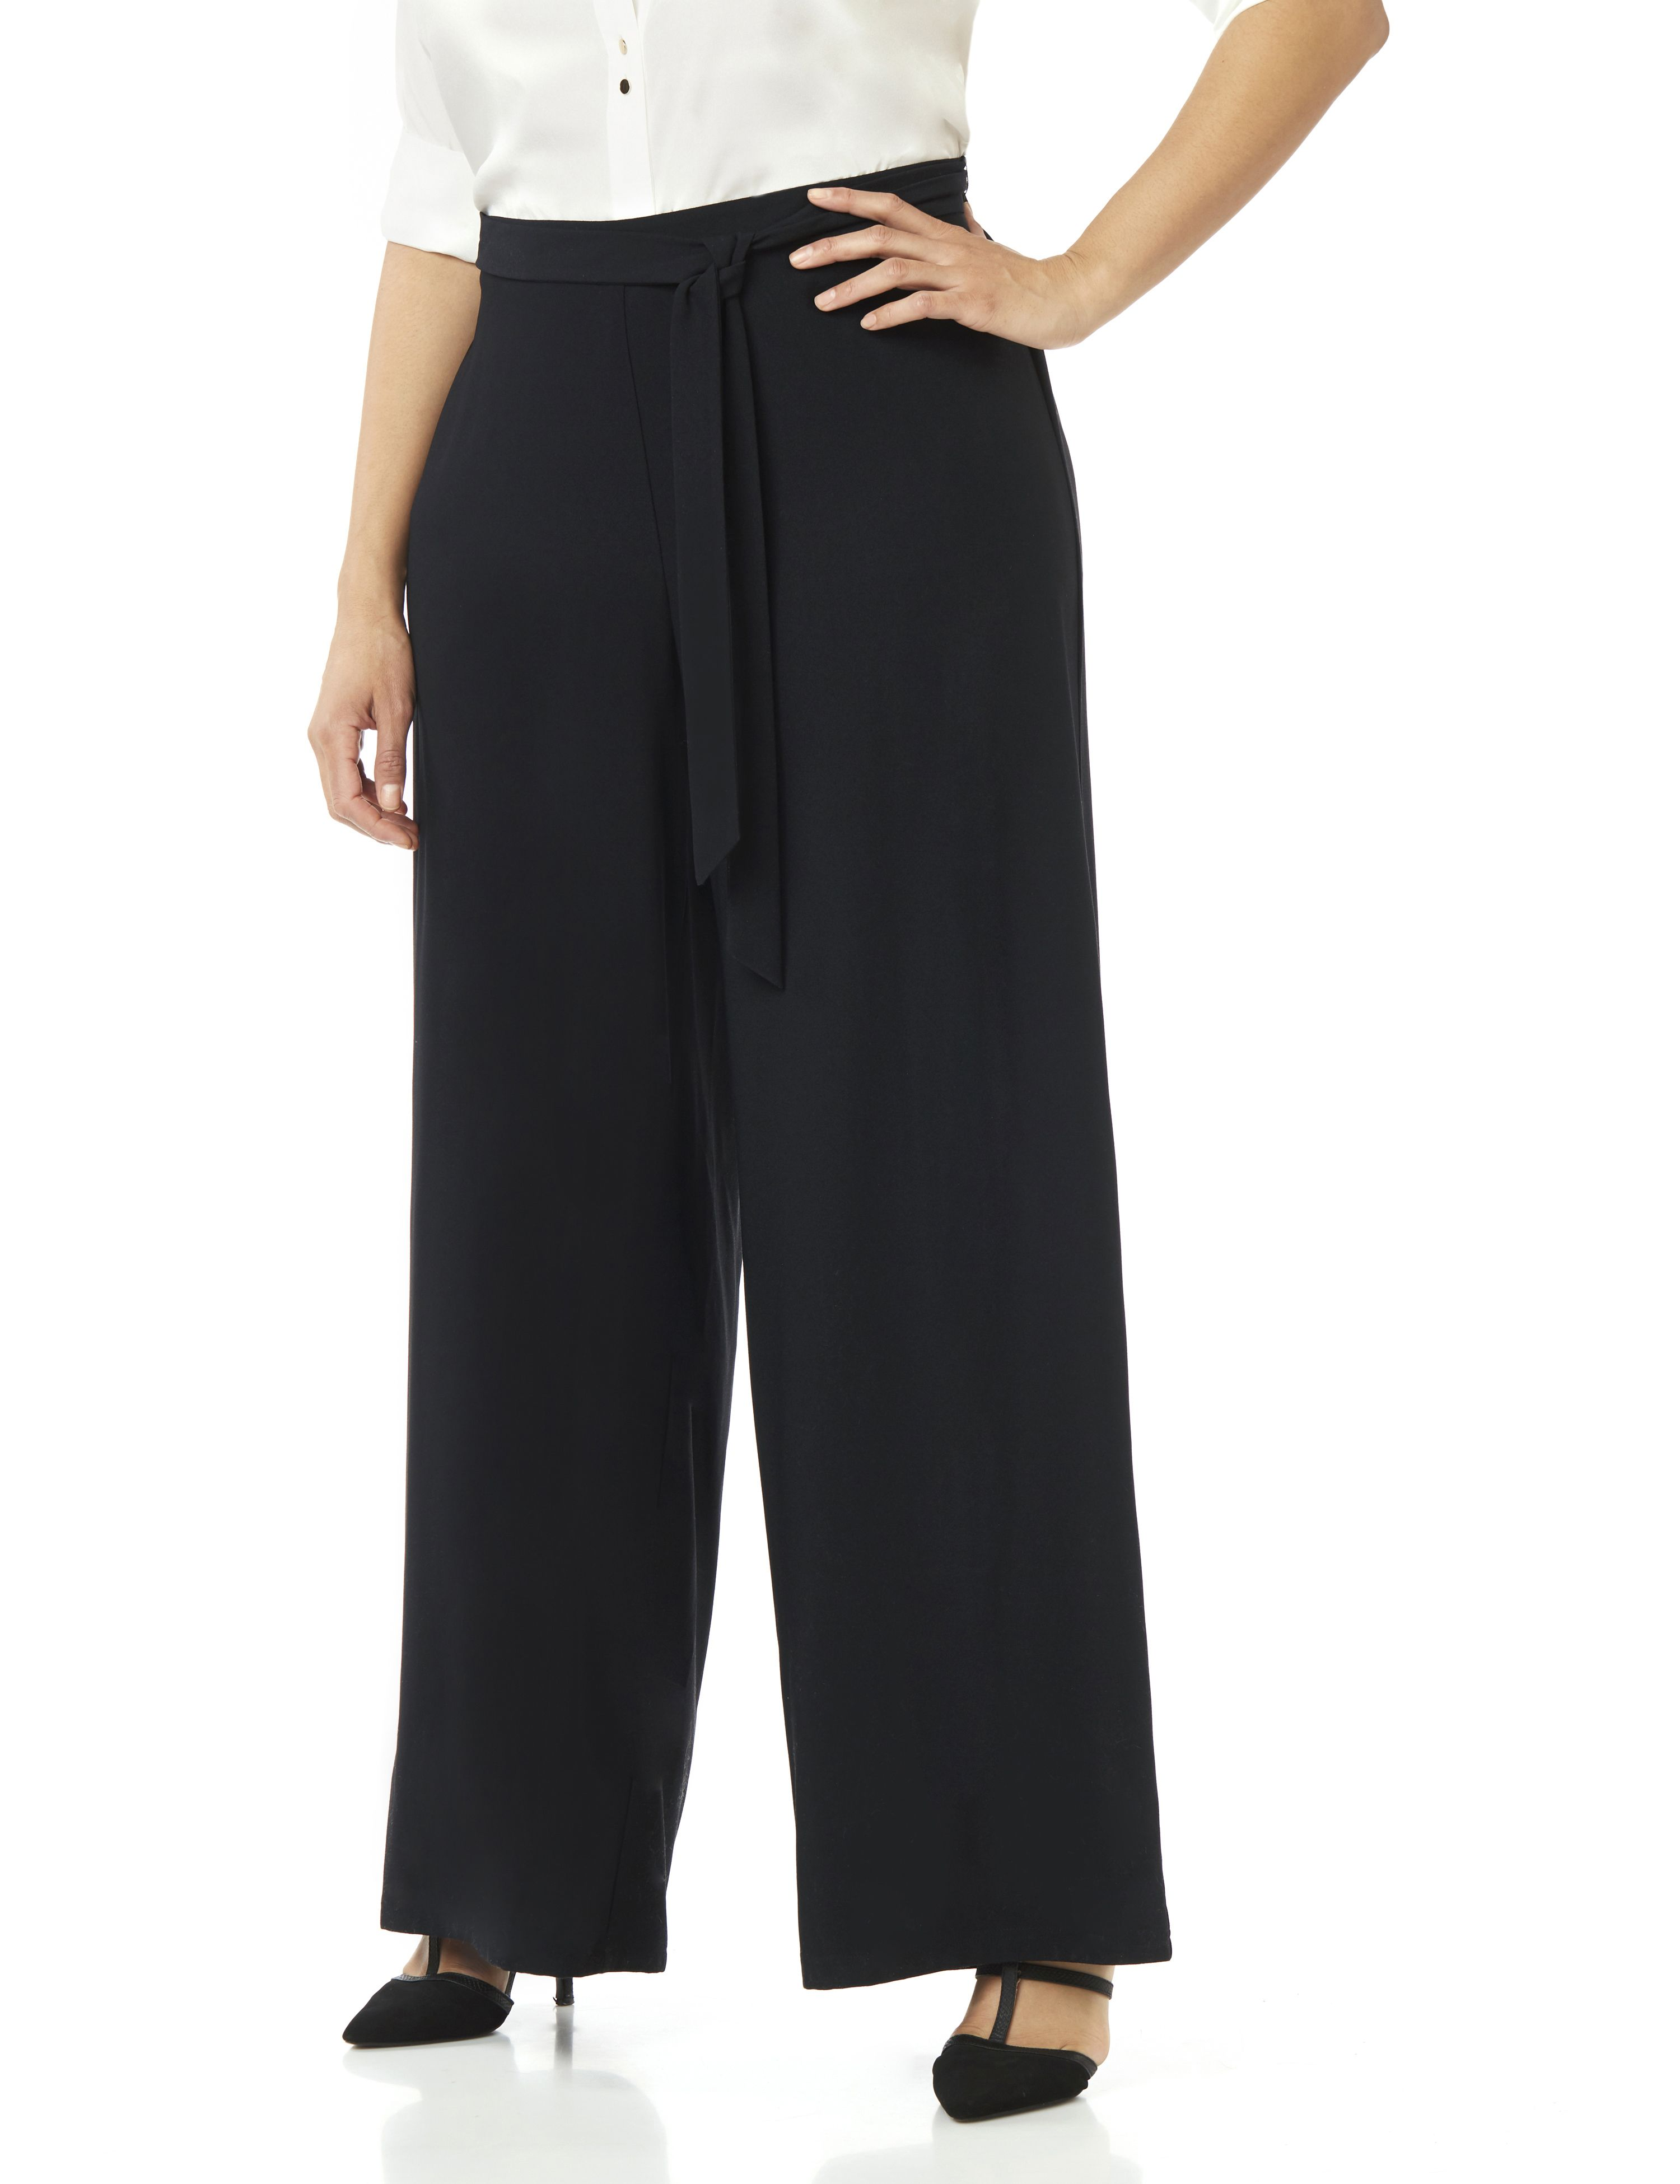 1930s Women's Pants and Beach Pajamas Napa Palazzo Pant $64.00 AT vintagedancer.com